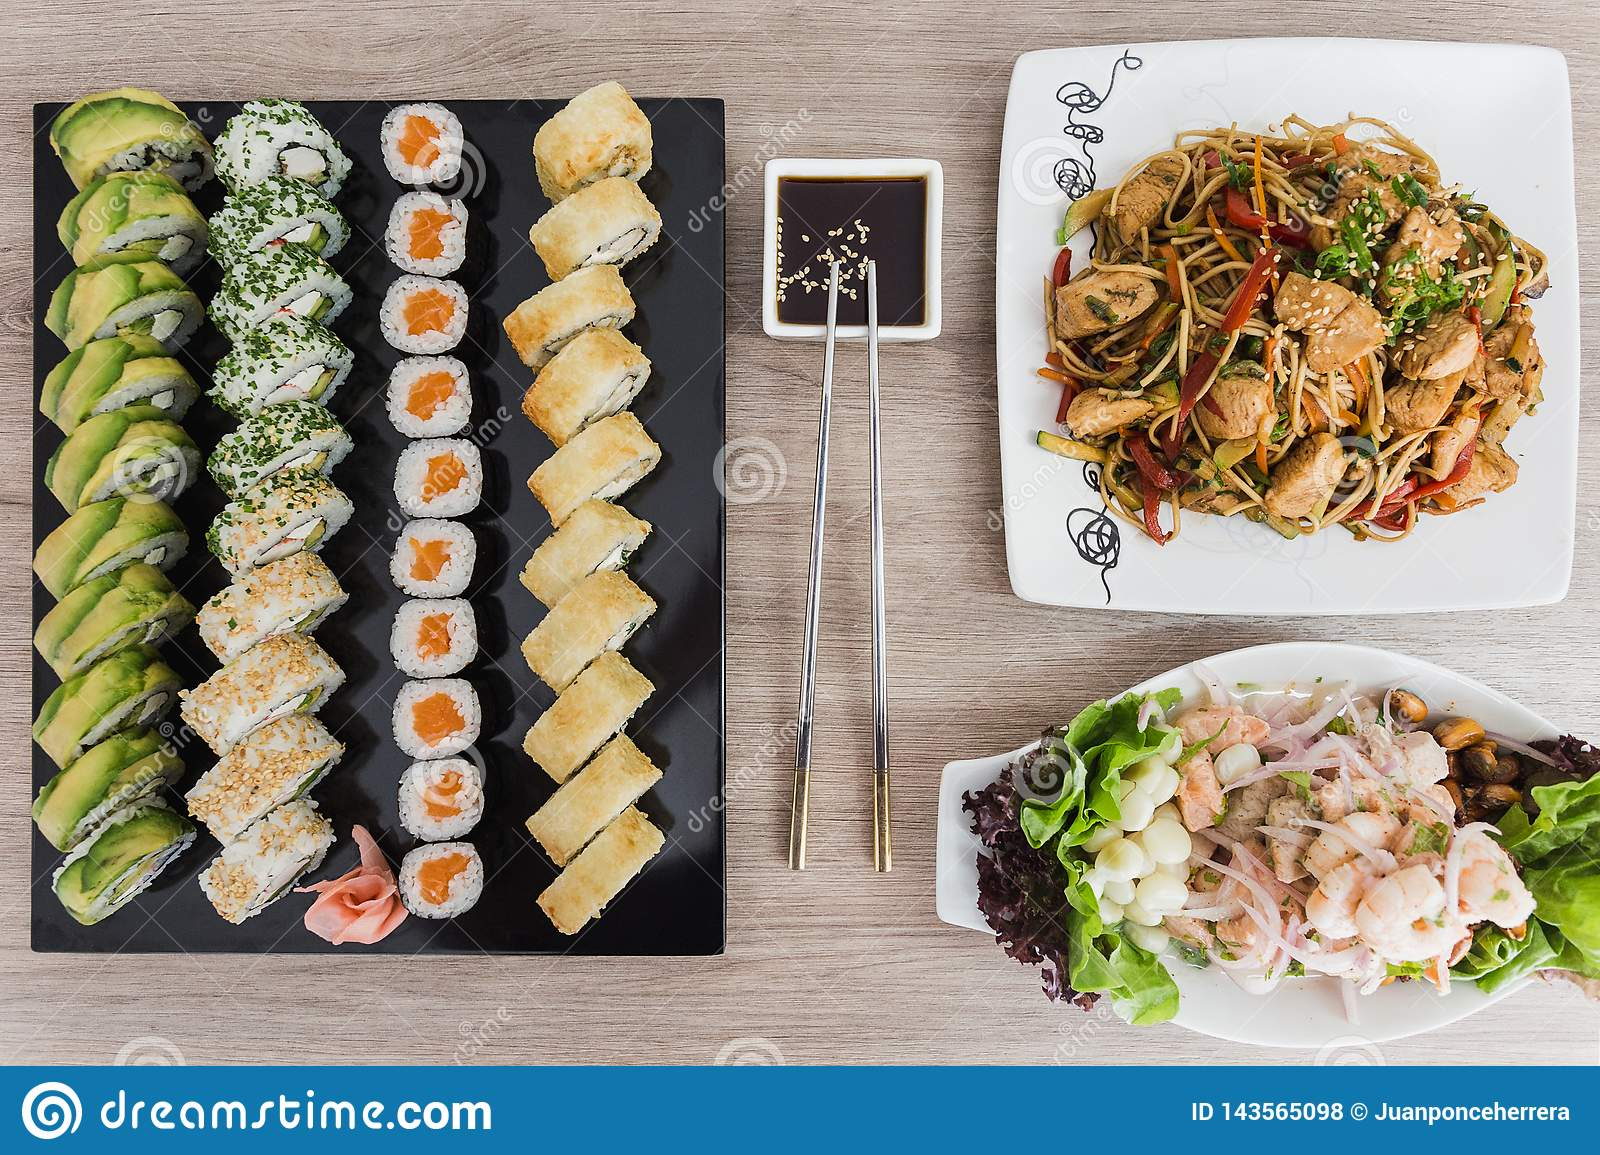 Sushi rolls with yakisoba, ceviche and soy sauce on a wooden table